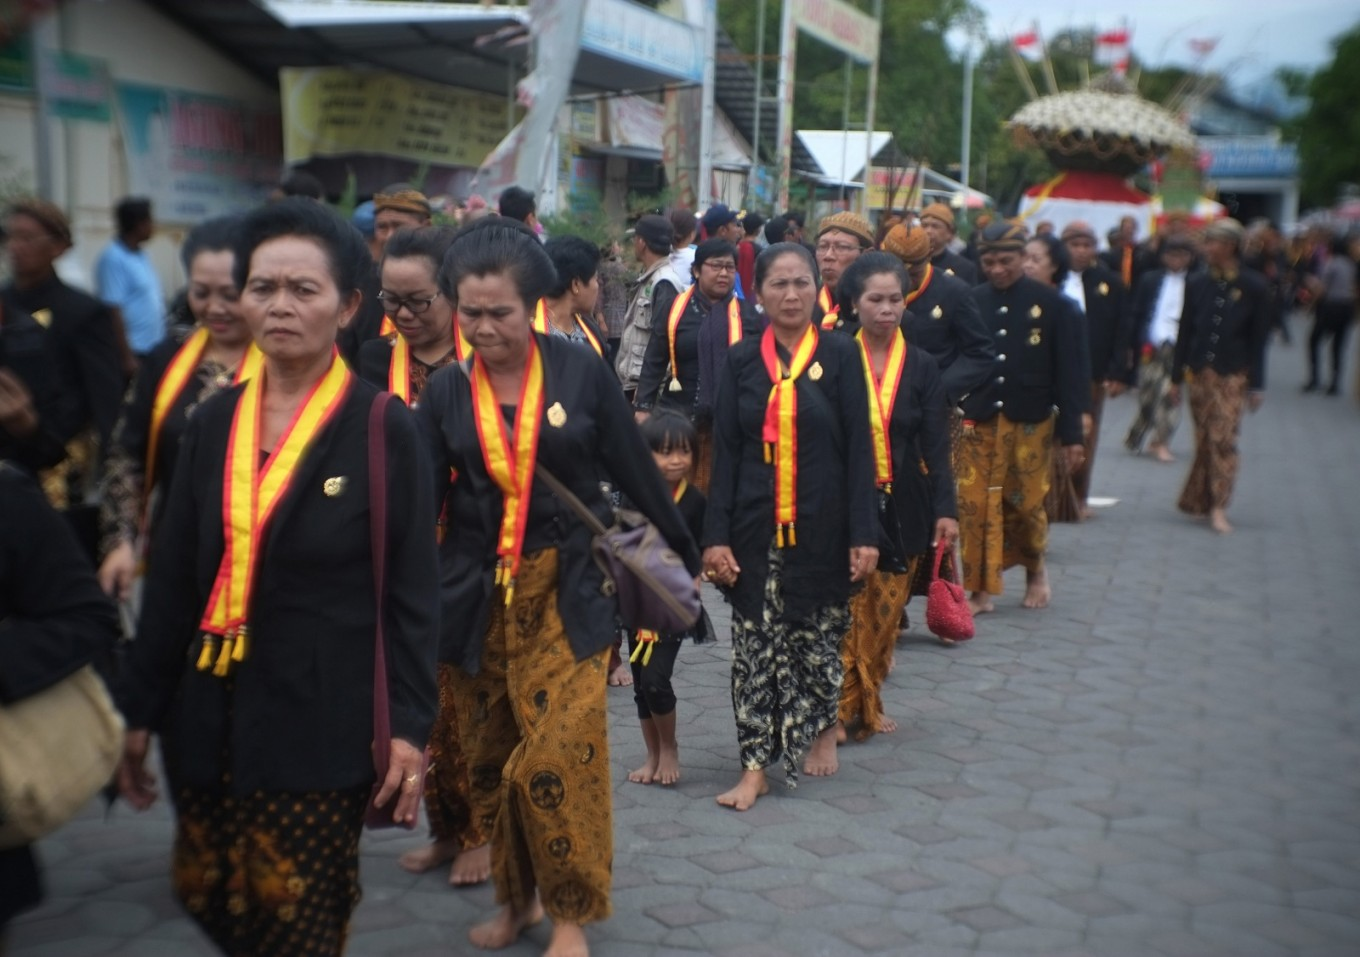 The palace's 'abdi dalem' were among the parade participants.